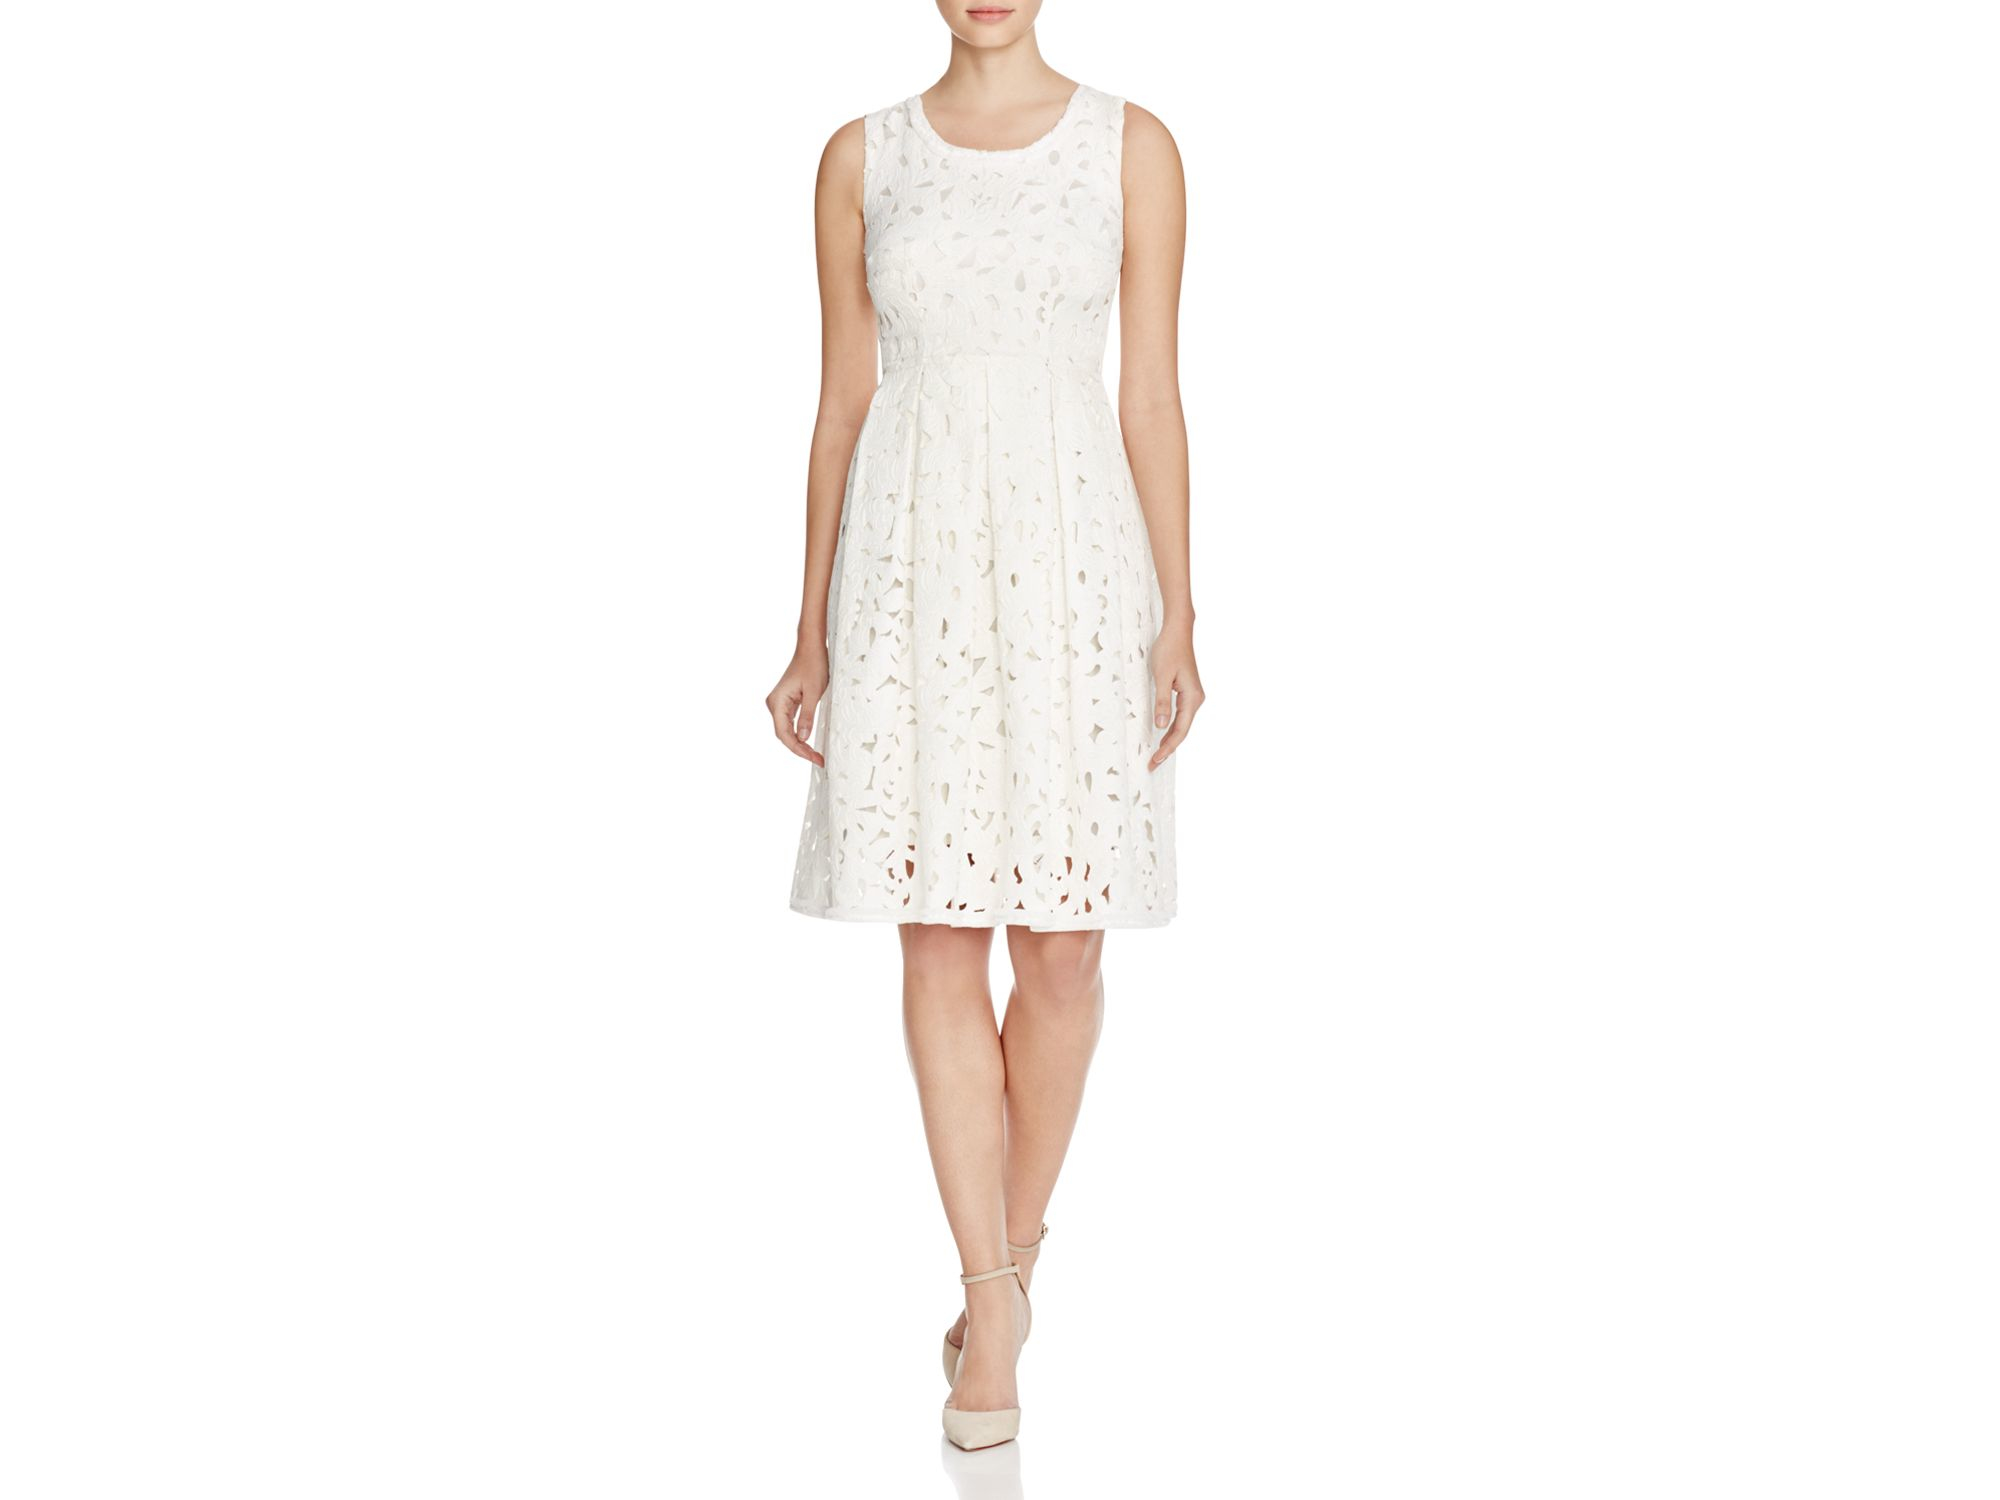 Elie Tahari Jessy Floral Fit And Flare Dress In White Lyst